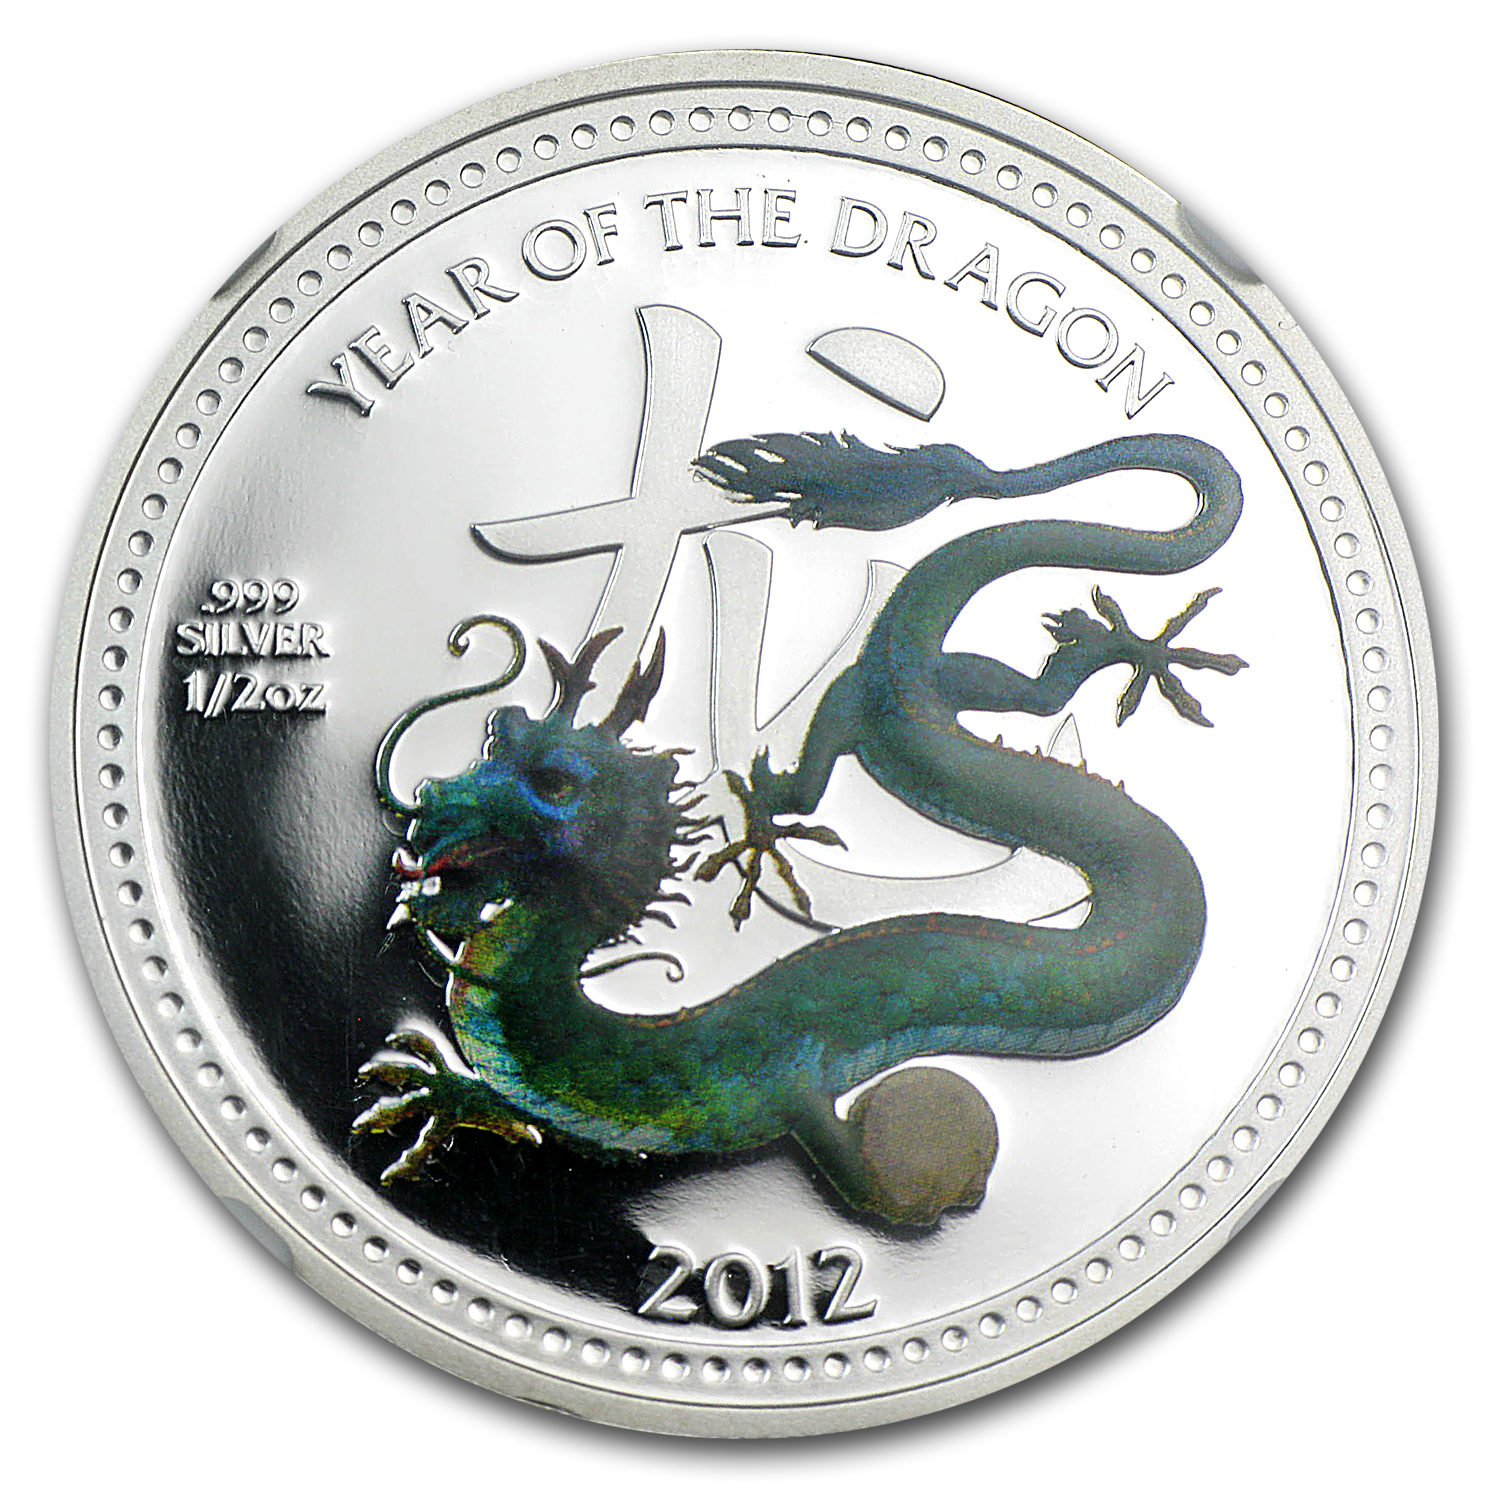 2012 Niue 1/2 oz Silver $2 Pearl Dragon PF-69 NGC (Colorized)